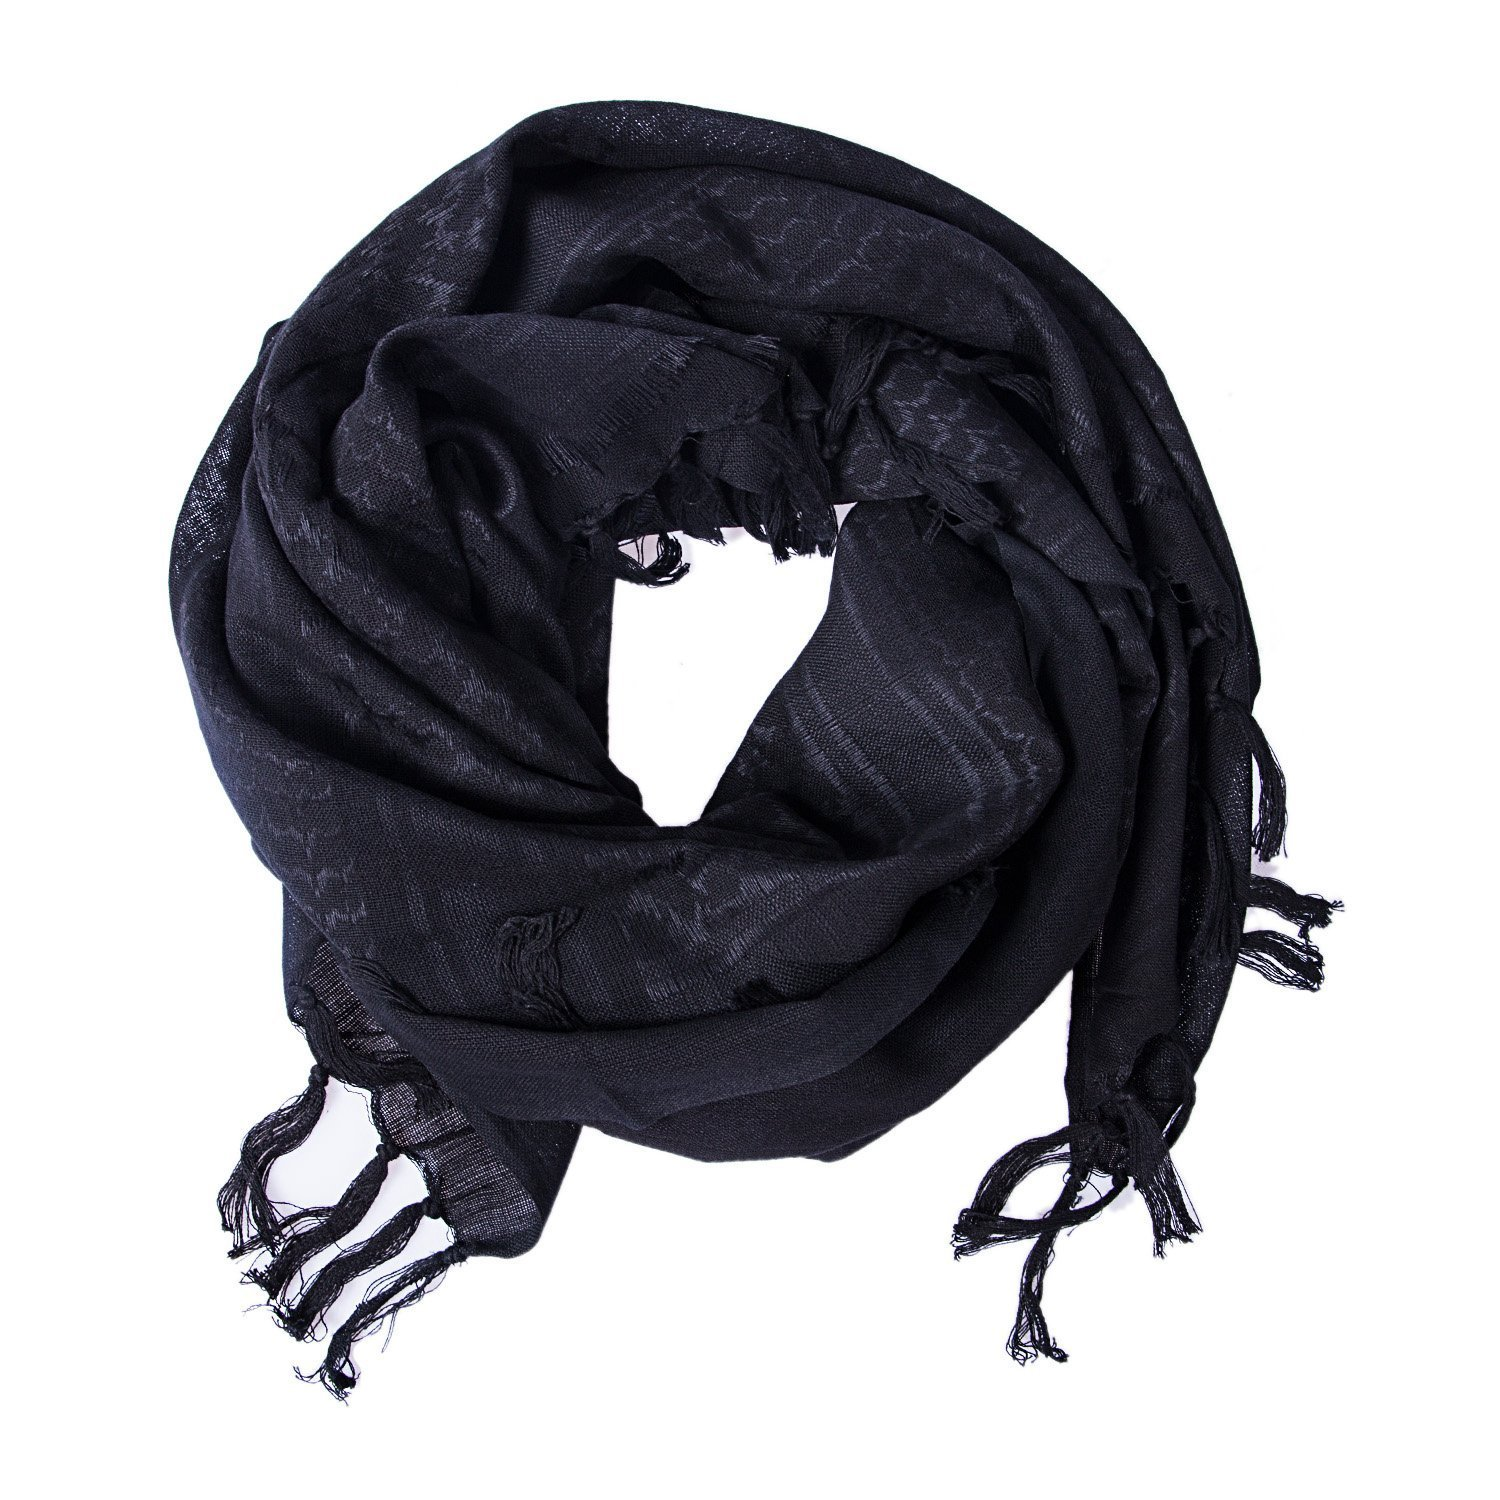 Miao Ma Outdoor Sports Multi-Function Advanced Shemagh Head and Neck Scarf MiaoMa